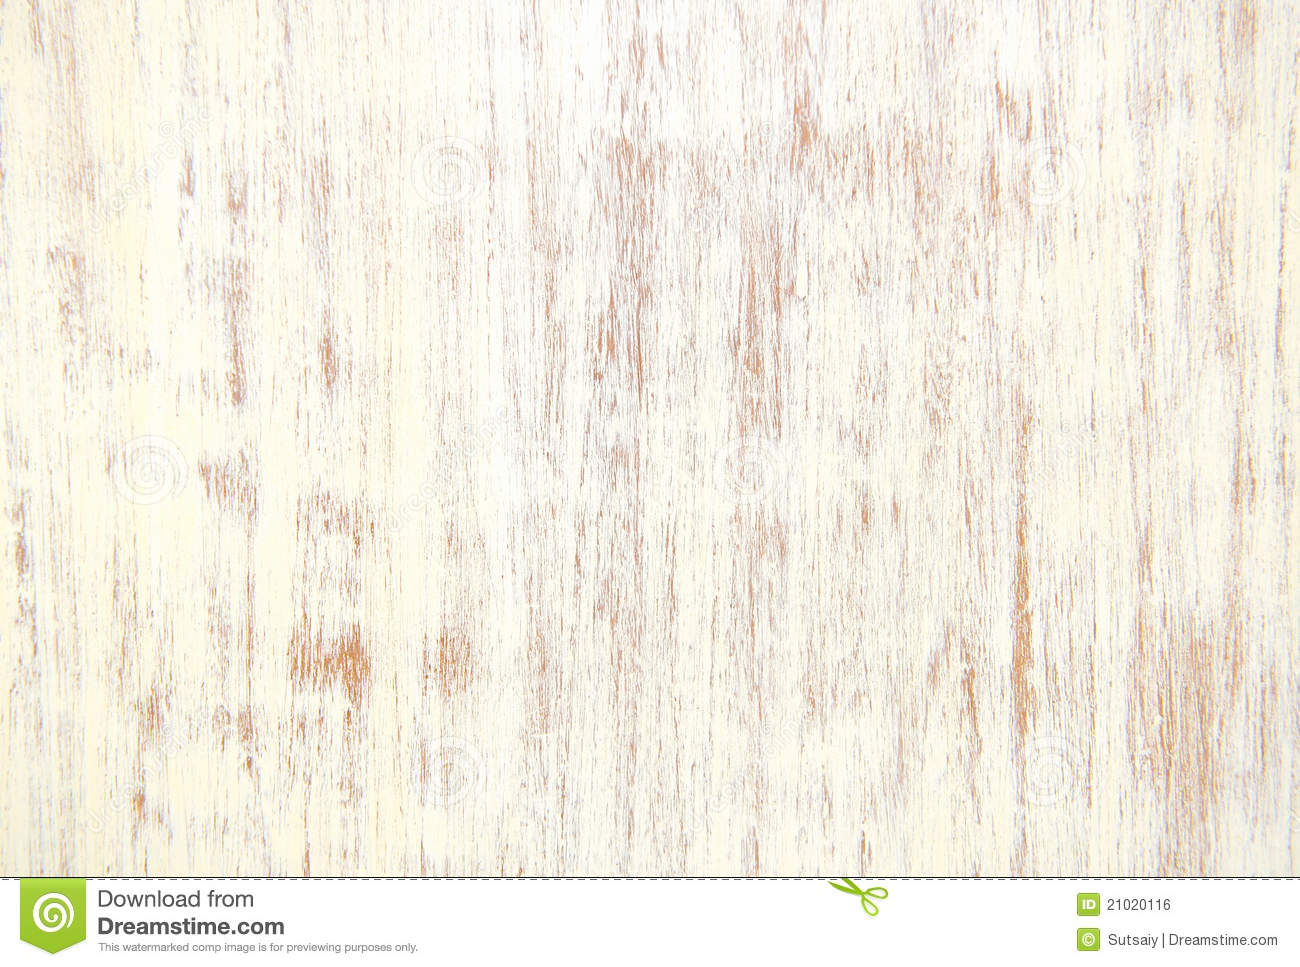 Texture Wood White Free : White Colored Wood Texture Royalty Free Stock Image - Image: 21020116